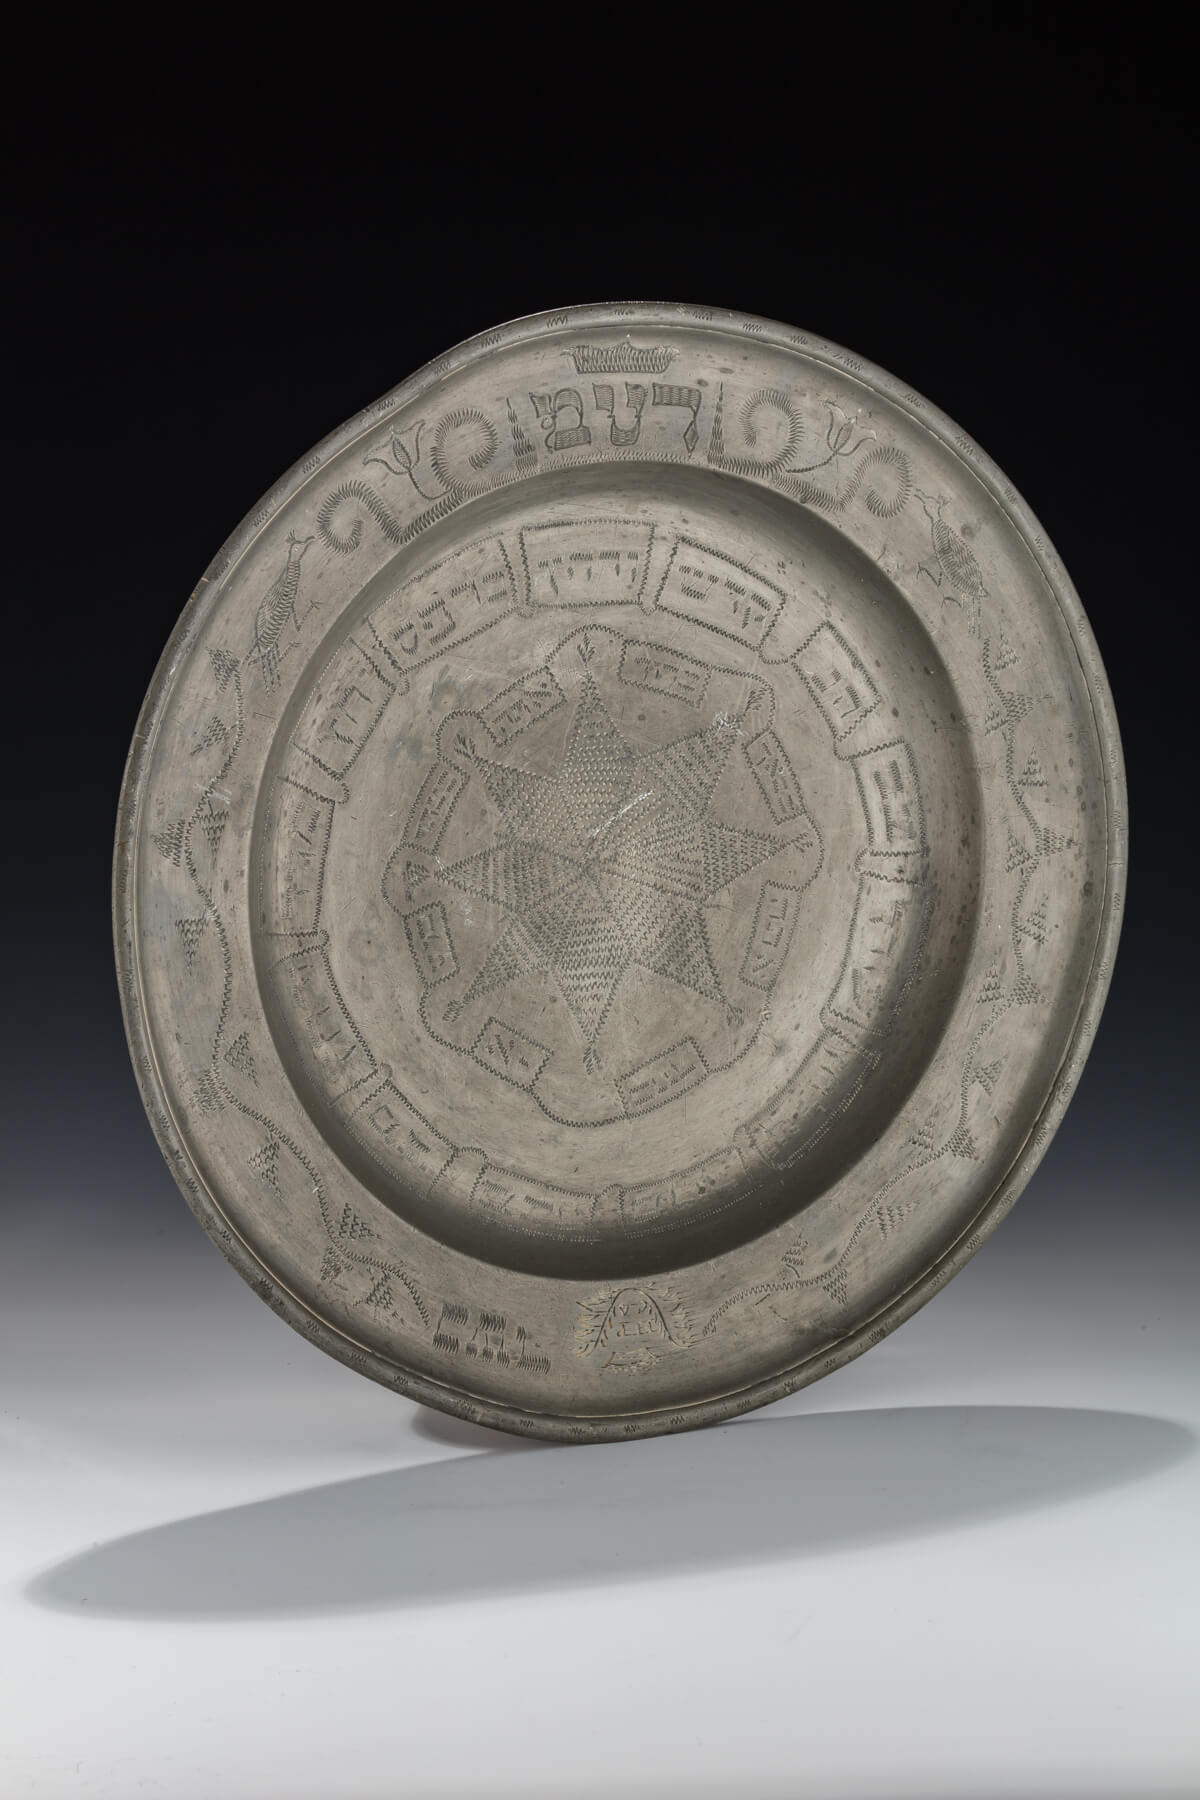 073. A Monumental Pewter Passover Seder Dish